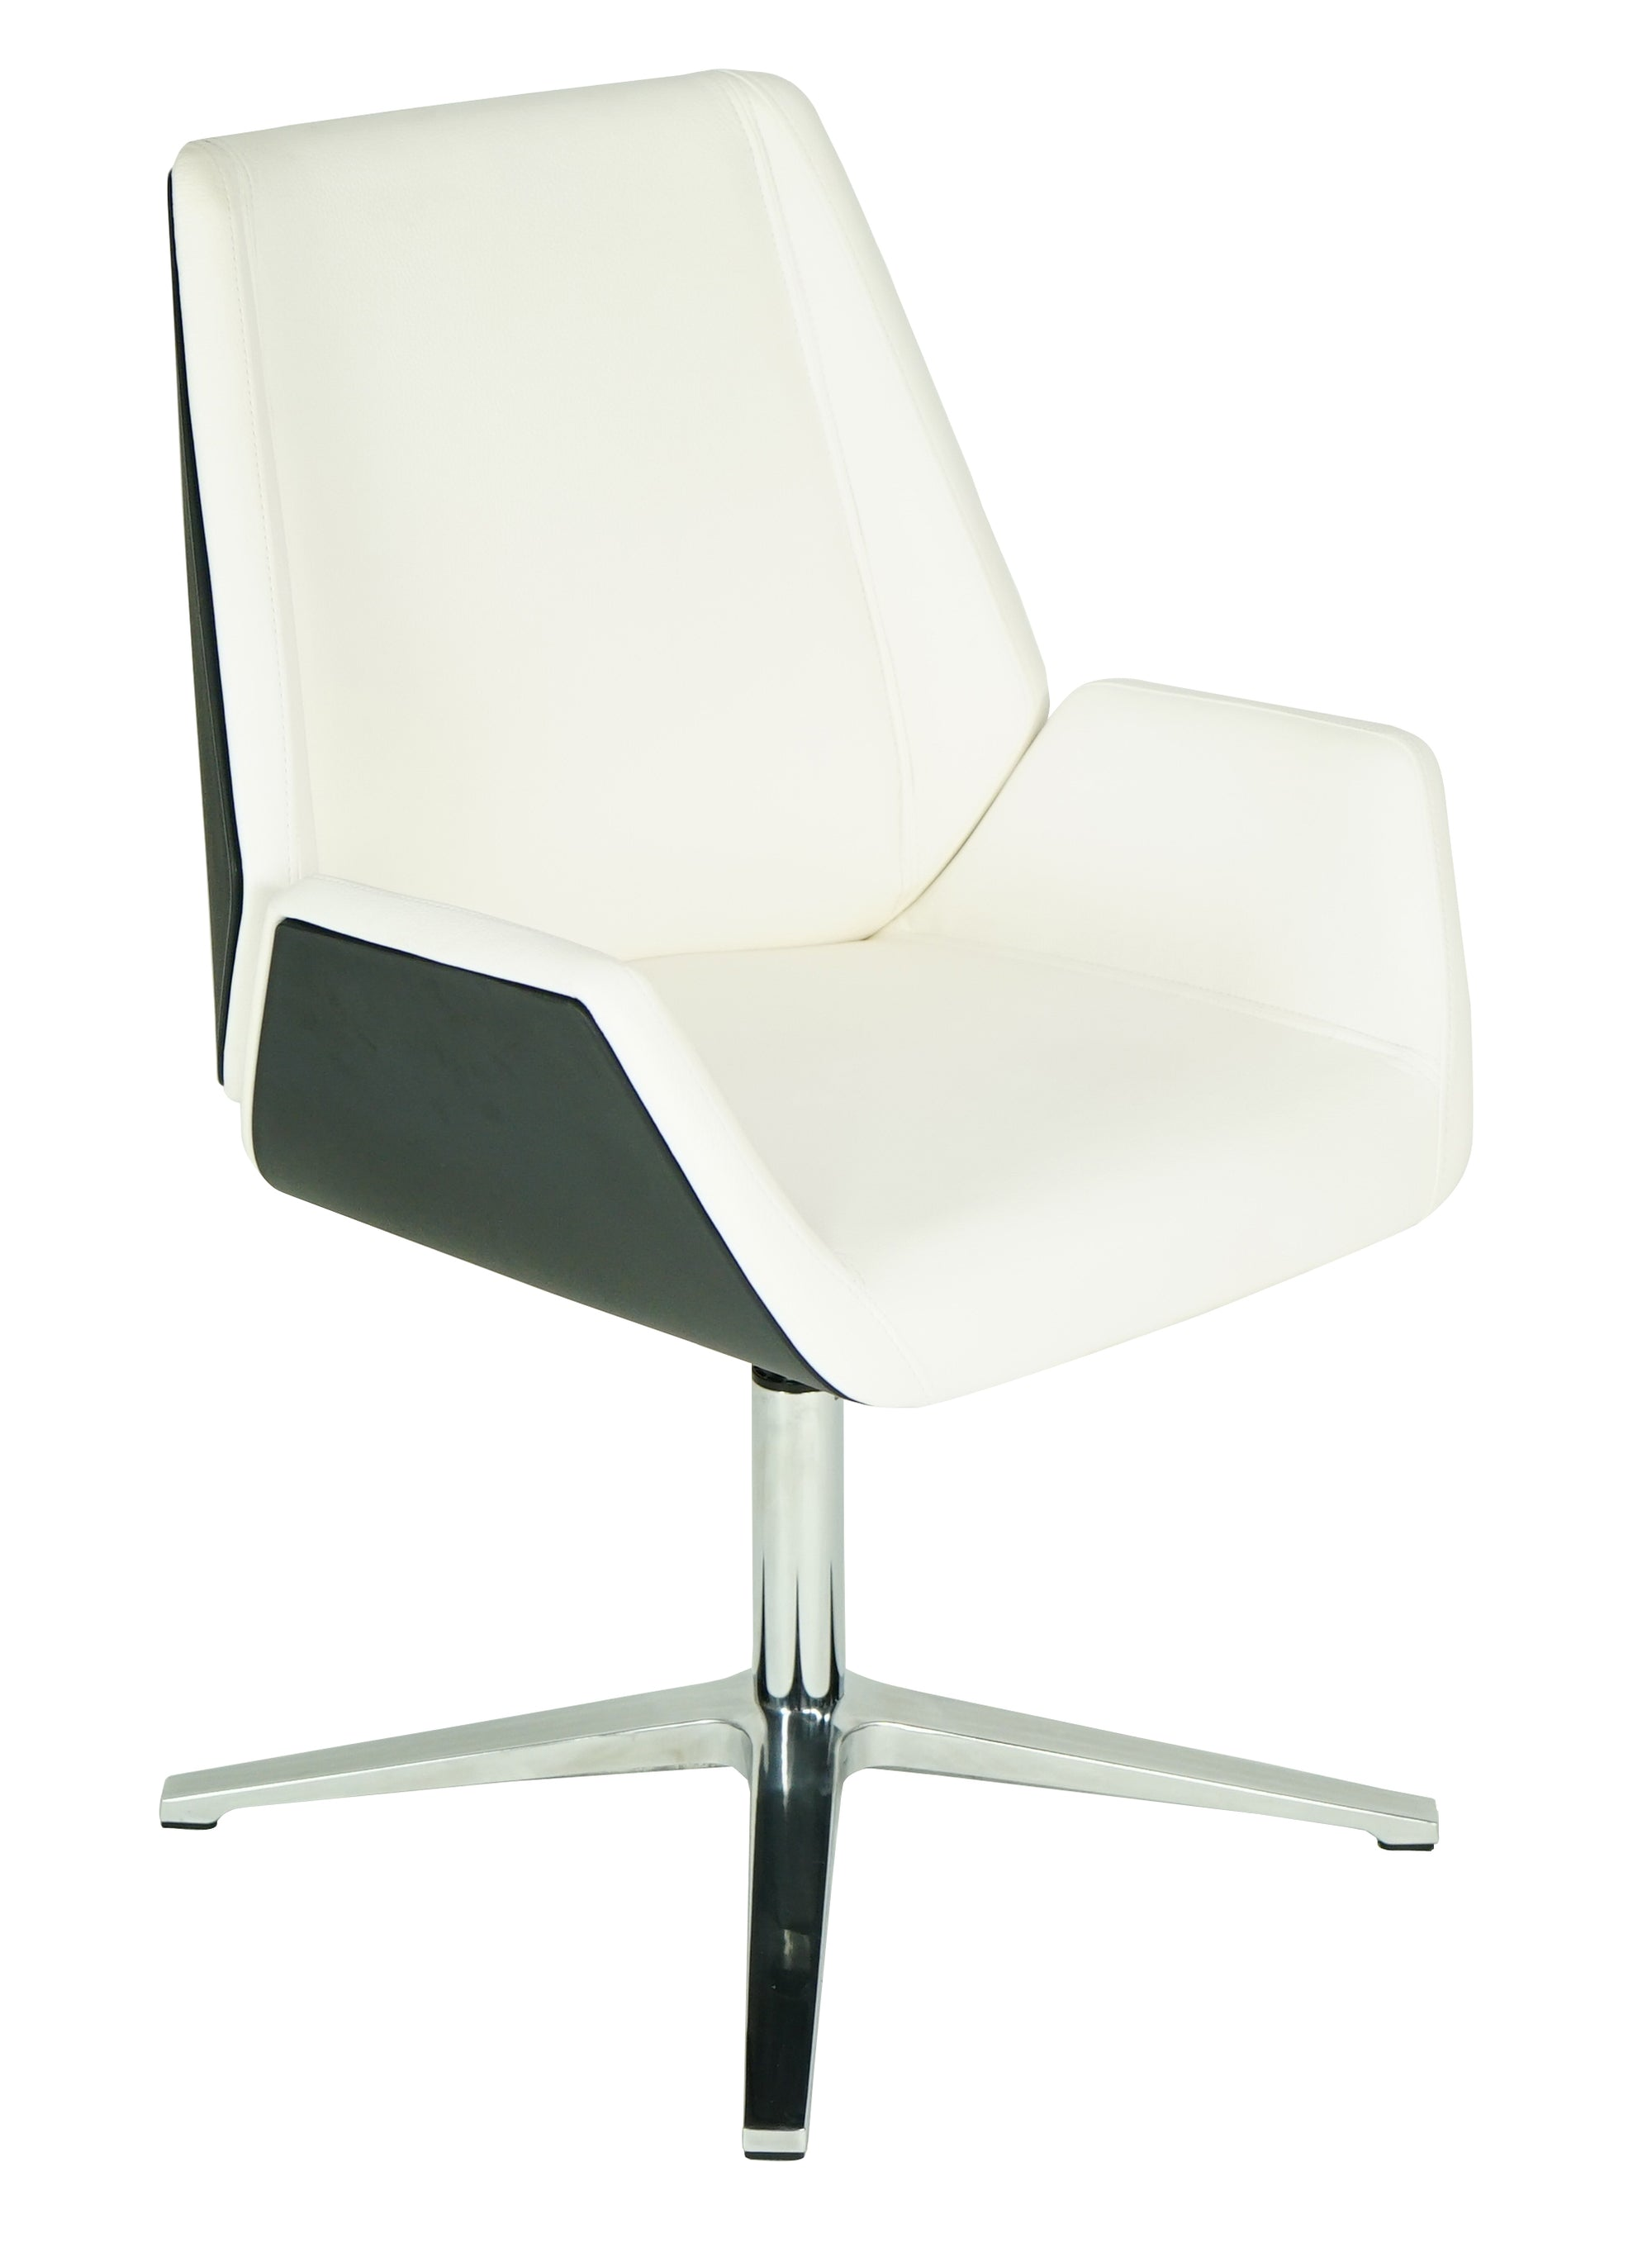 Bratti Shell chair